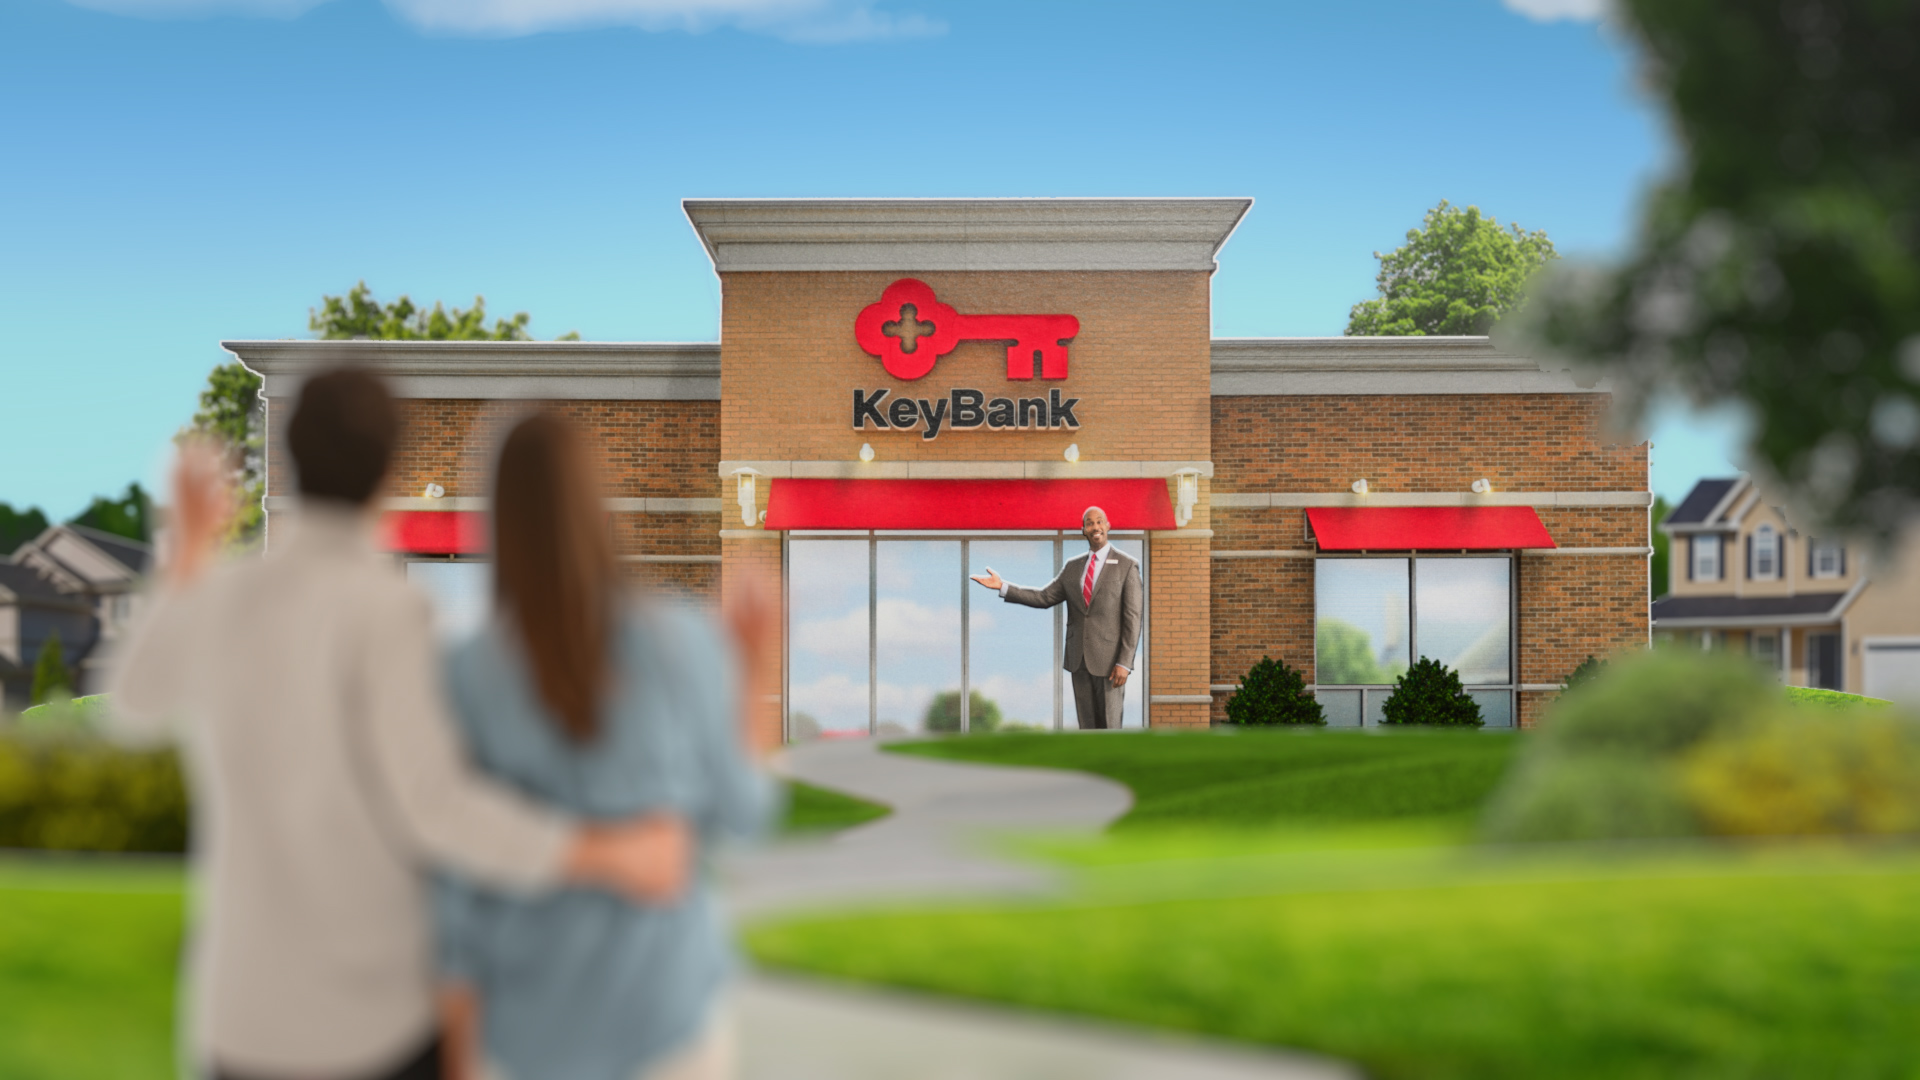 KEYBANK_HIRES_STILLS_02.jpg